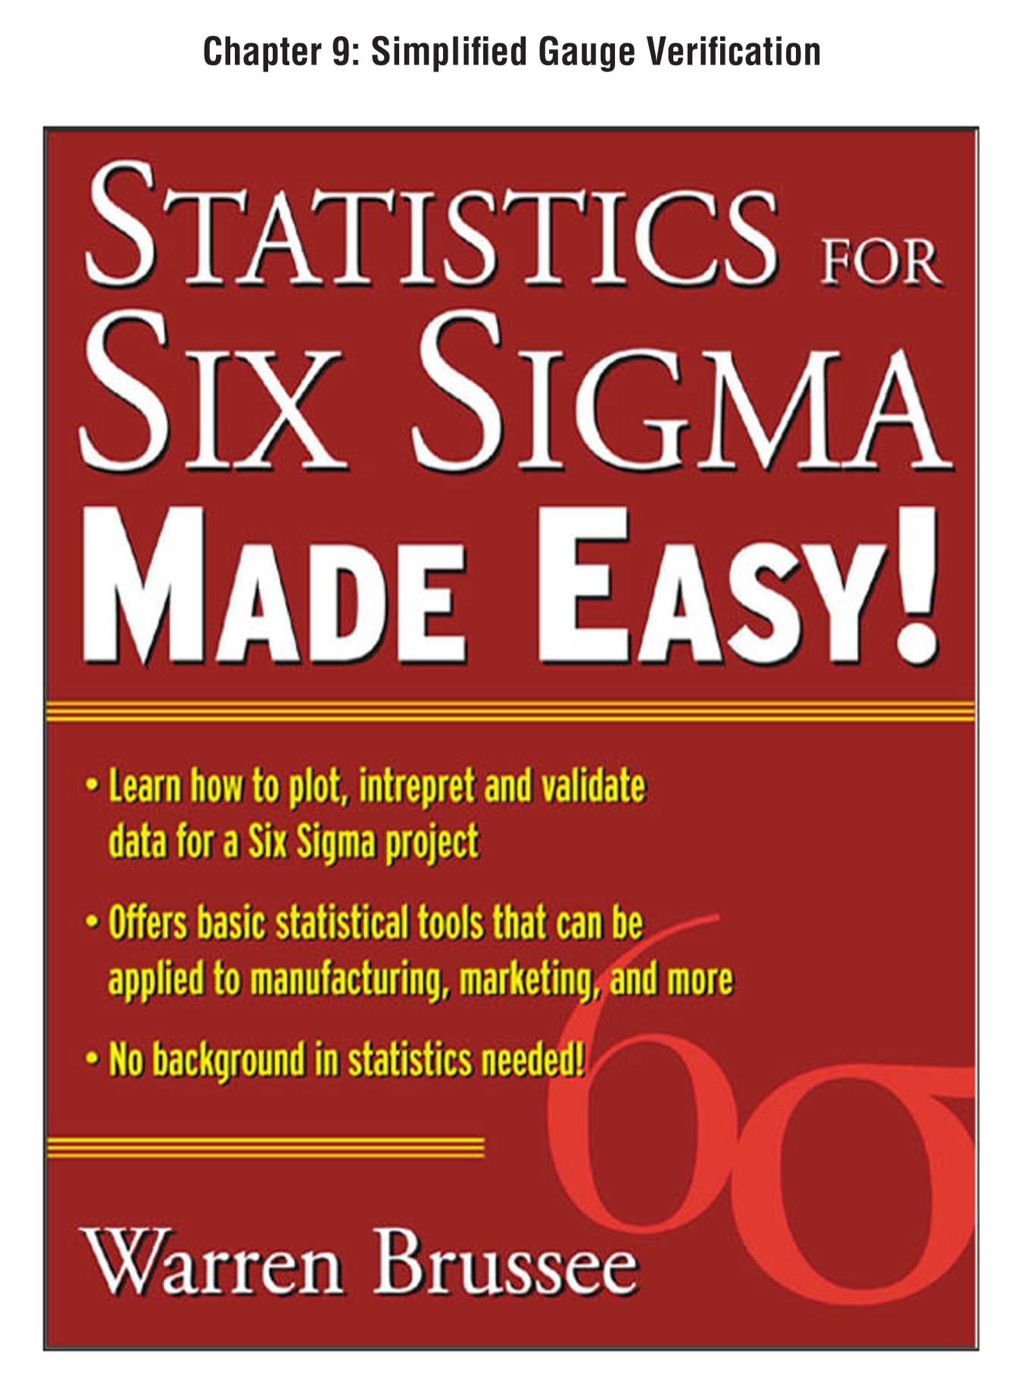 medium resolution of statistics for six sigma made easy chapter 9 simplified gauge verification ebook